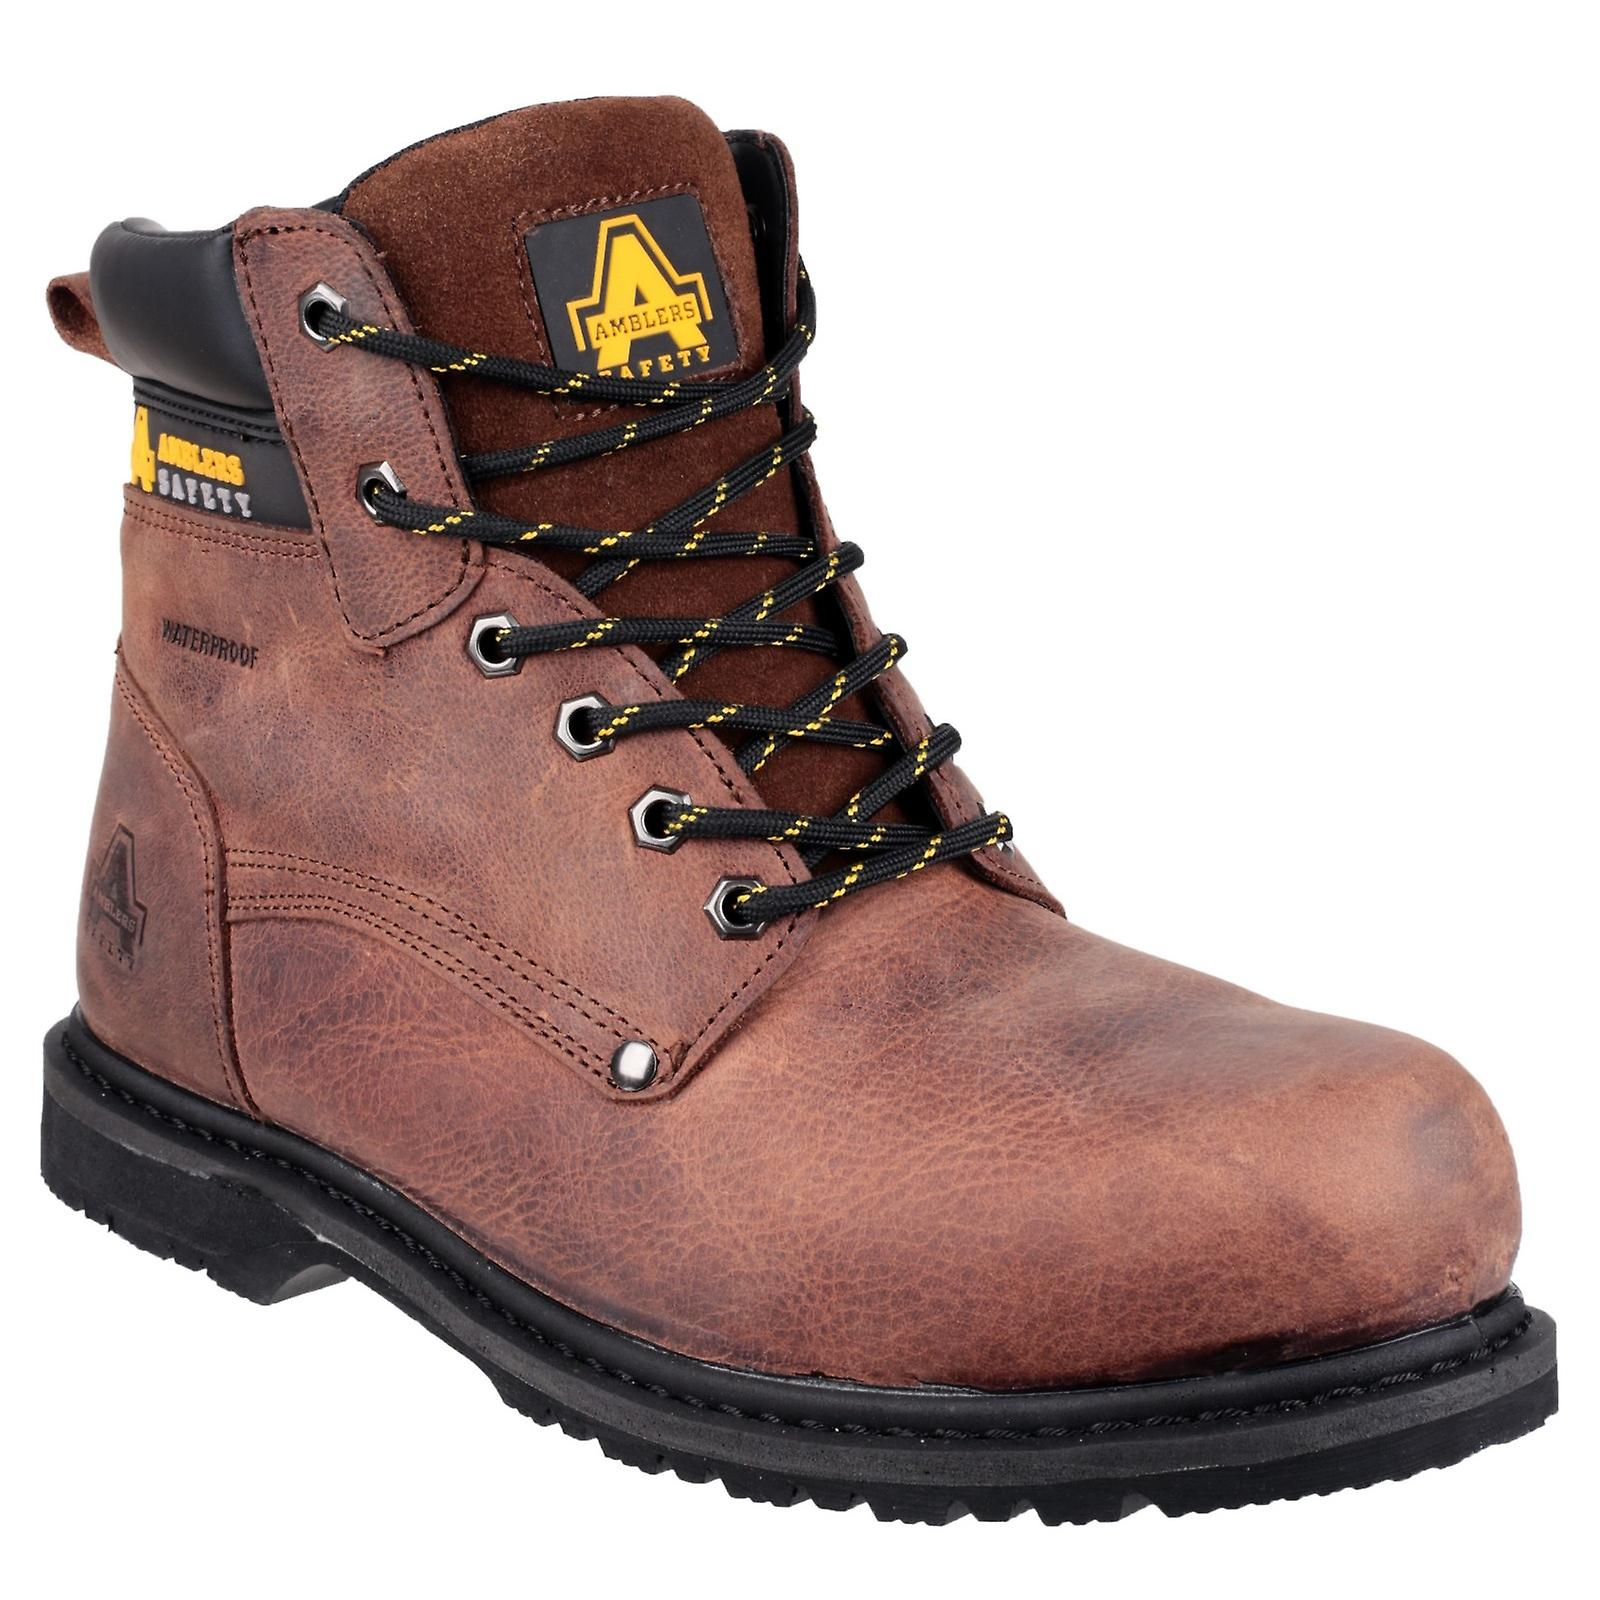 Amblers Fs145 Mens Safety Boots